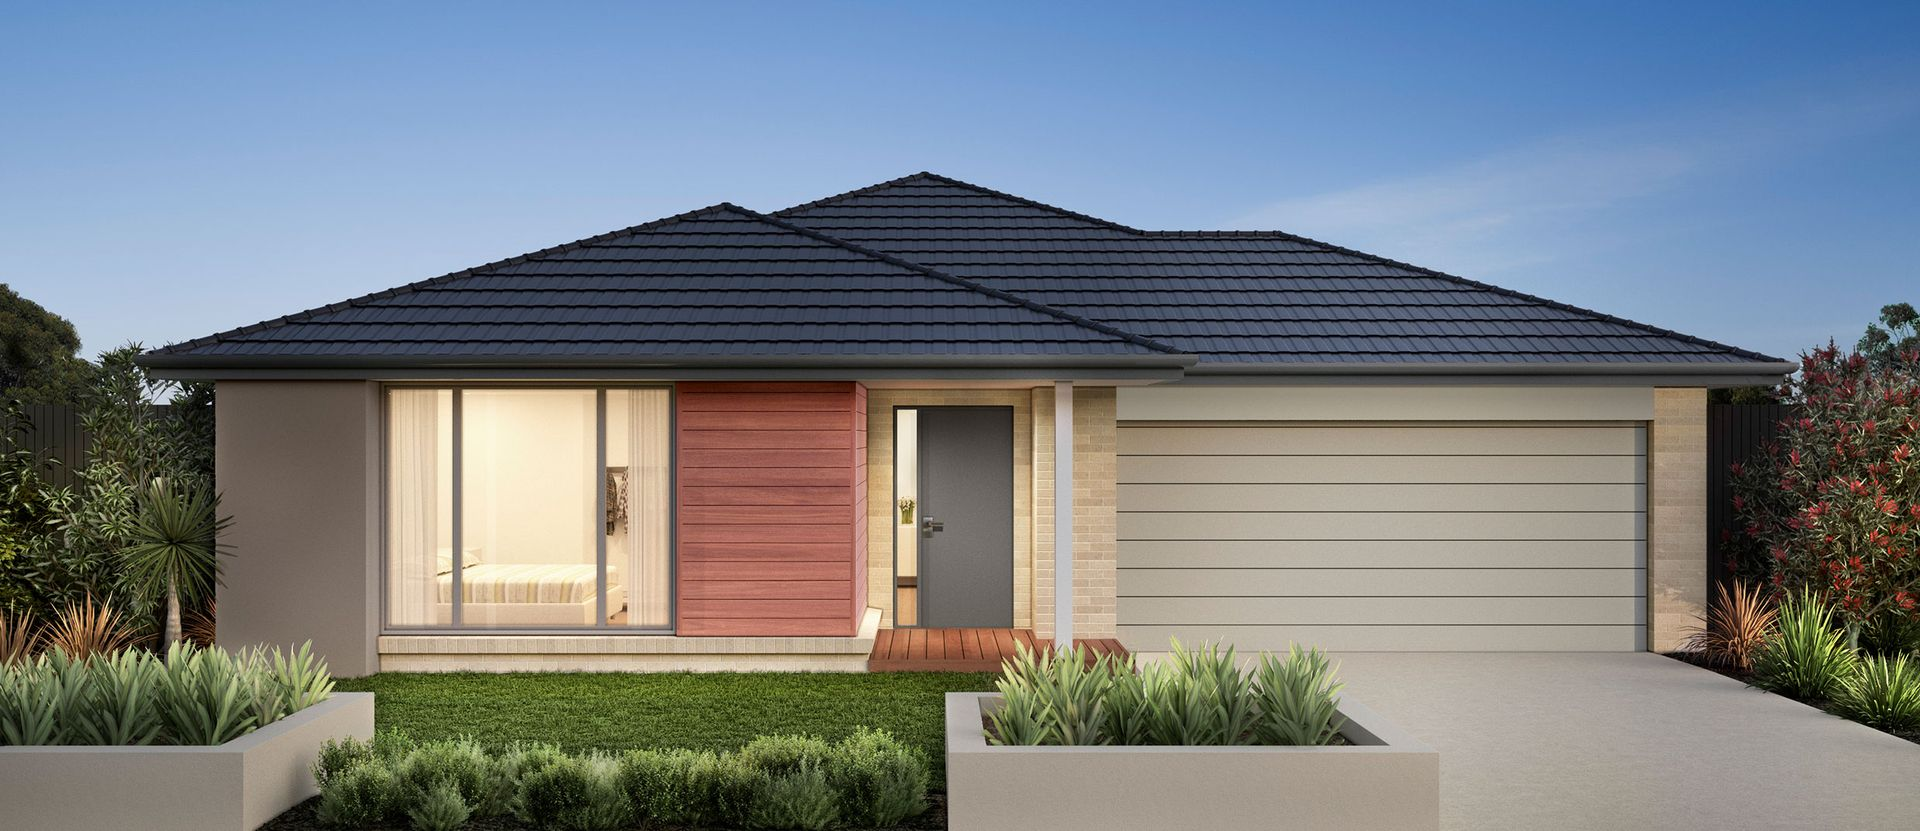 204 Athletic Circuit, Clyde VIC 3978, Image 0